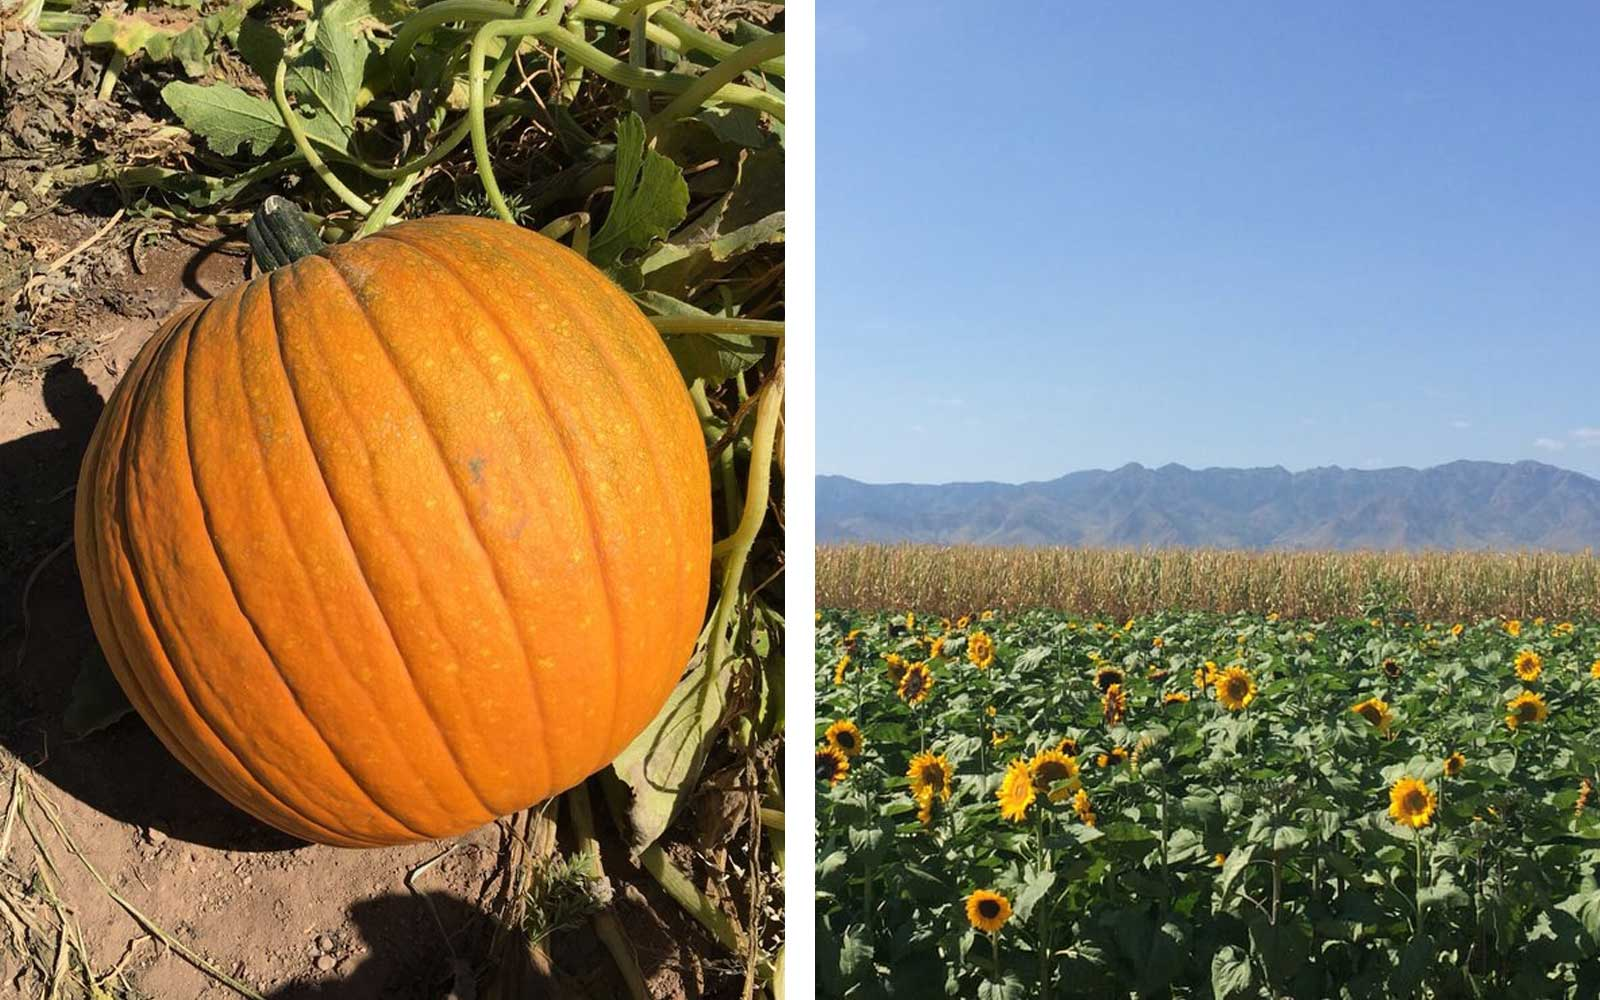 Apple Annie's Produce & Pumpkins, Willcox, AZ